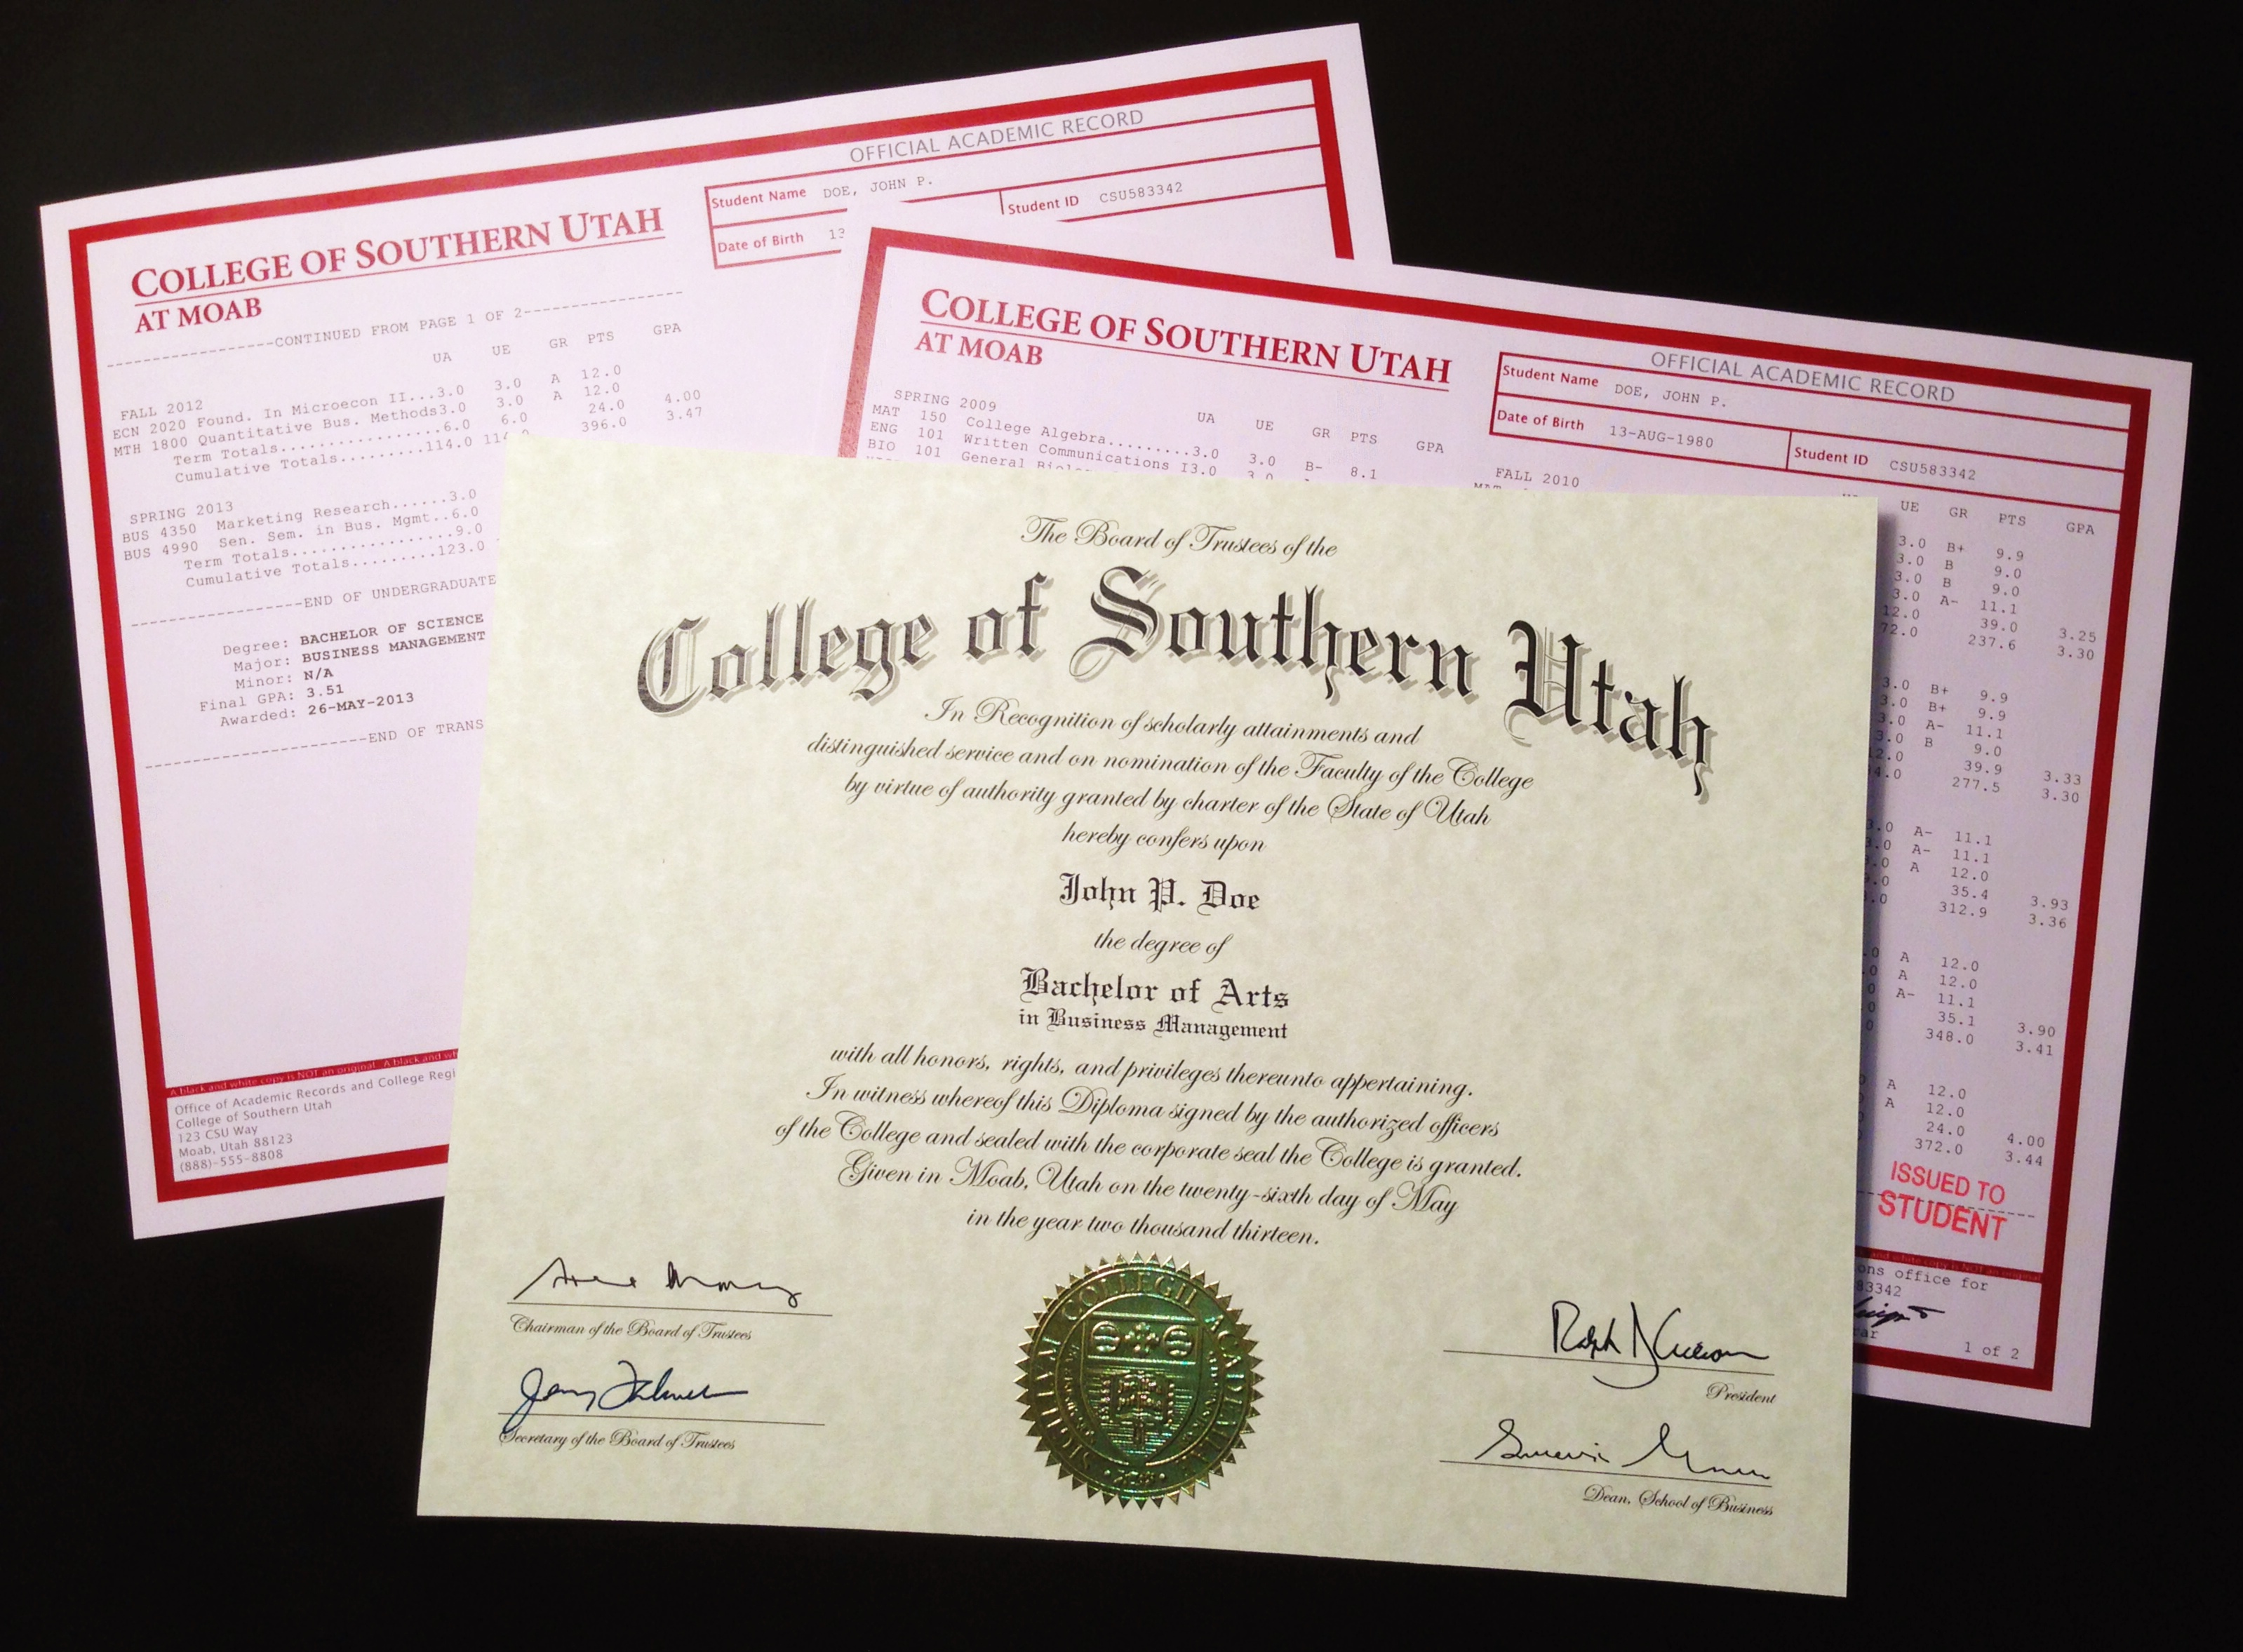 Fake College Degree Package including a fake college diploma and realistic-looking fake college transcripts